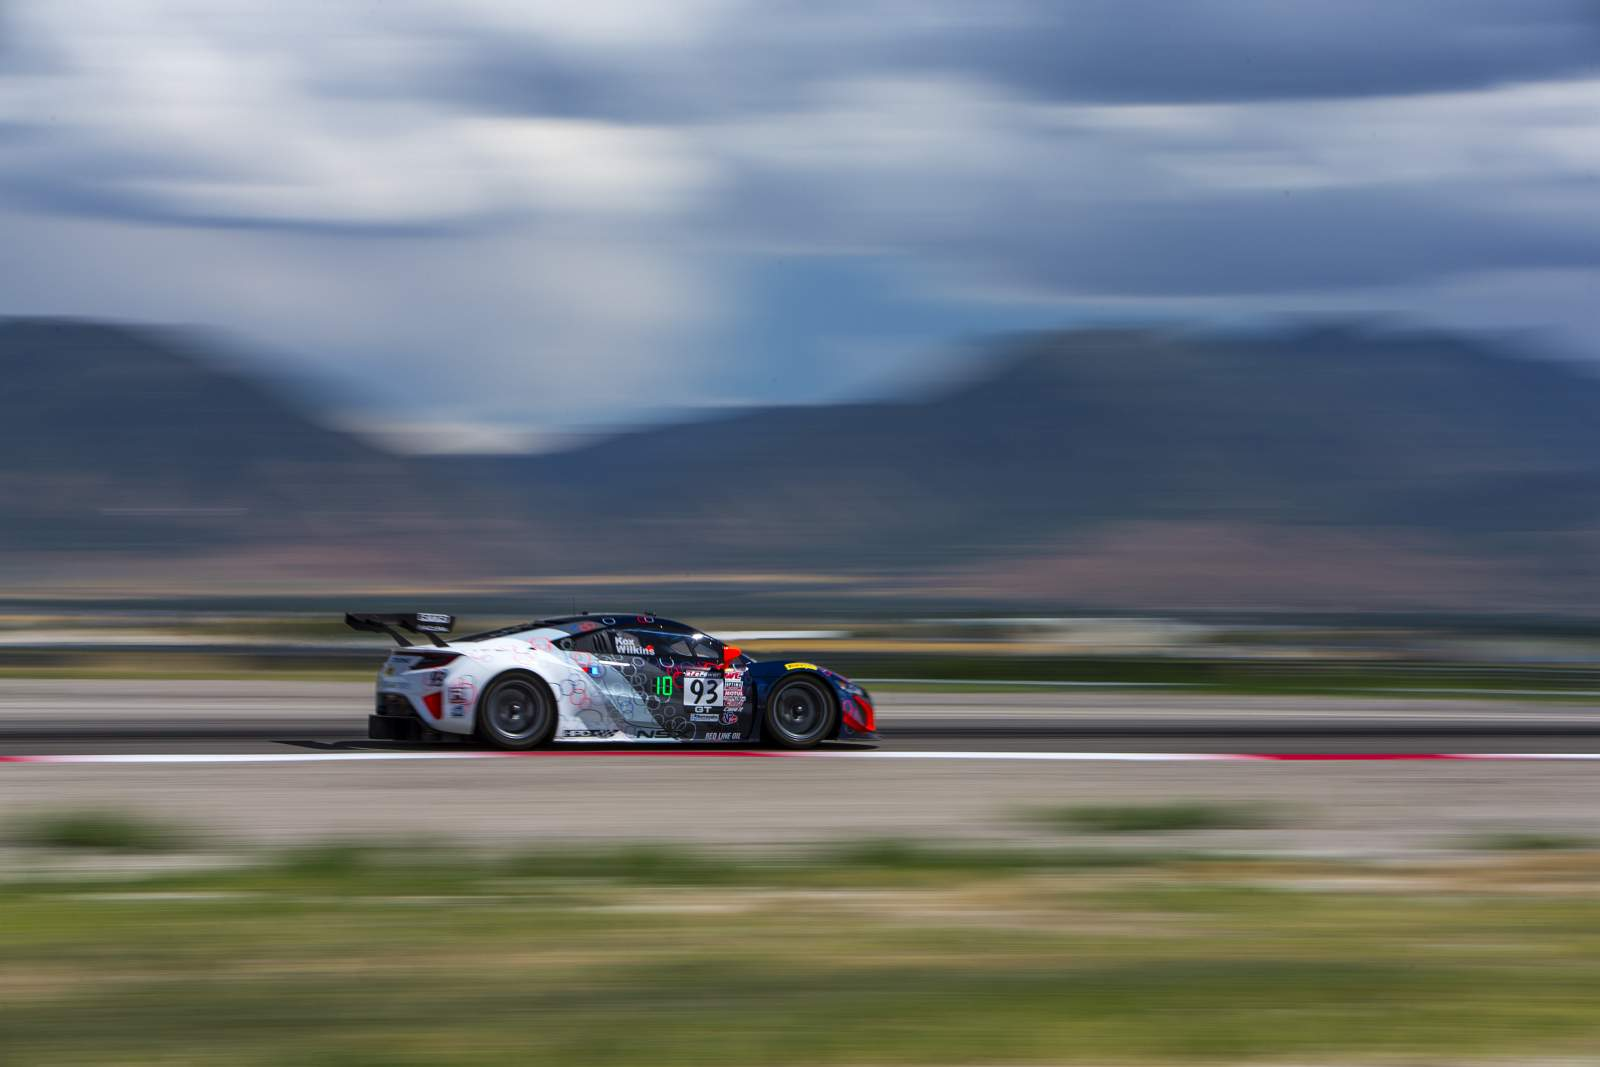 peter-kox-realtime-racing-pirelli-world-challenge-utah-motorsport-campus--104